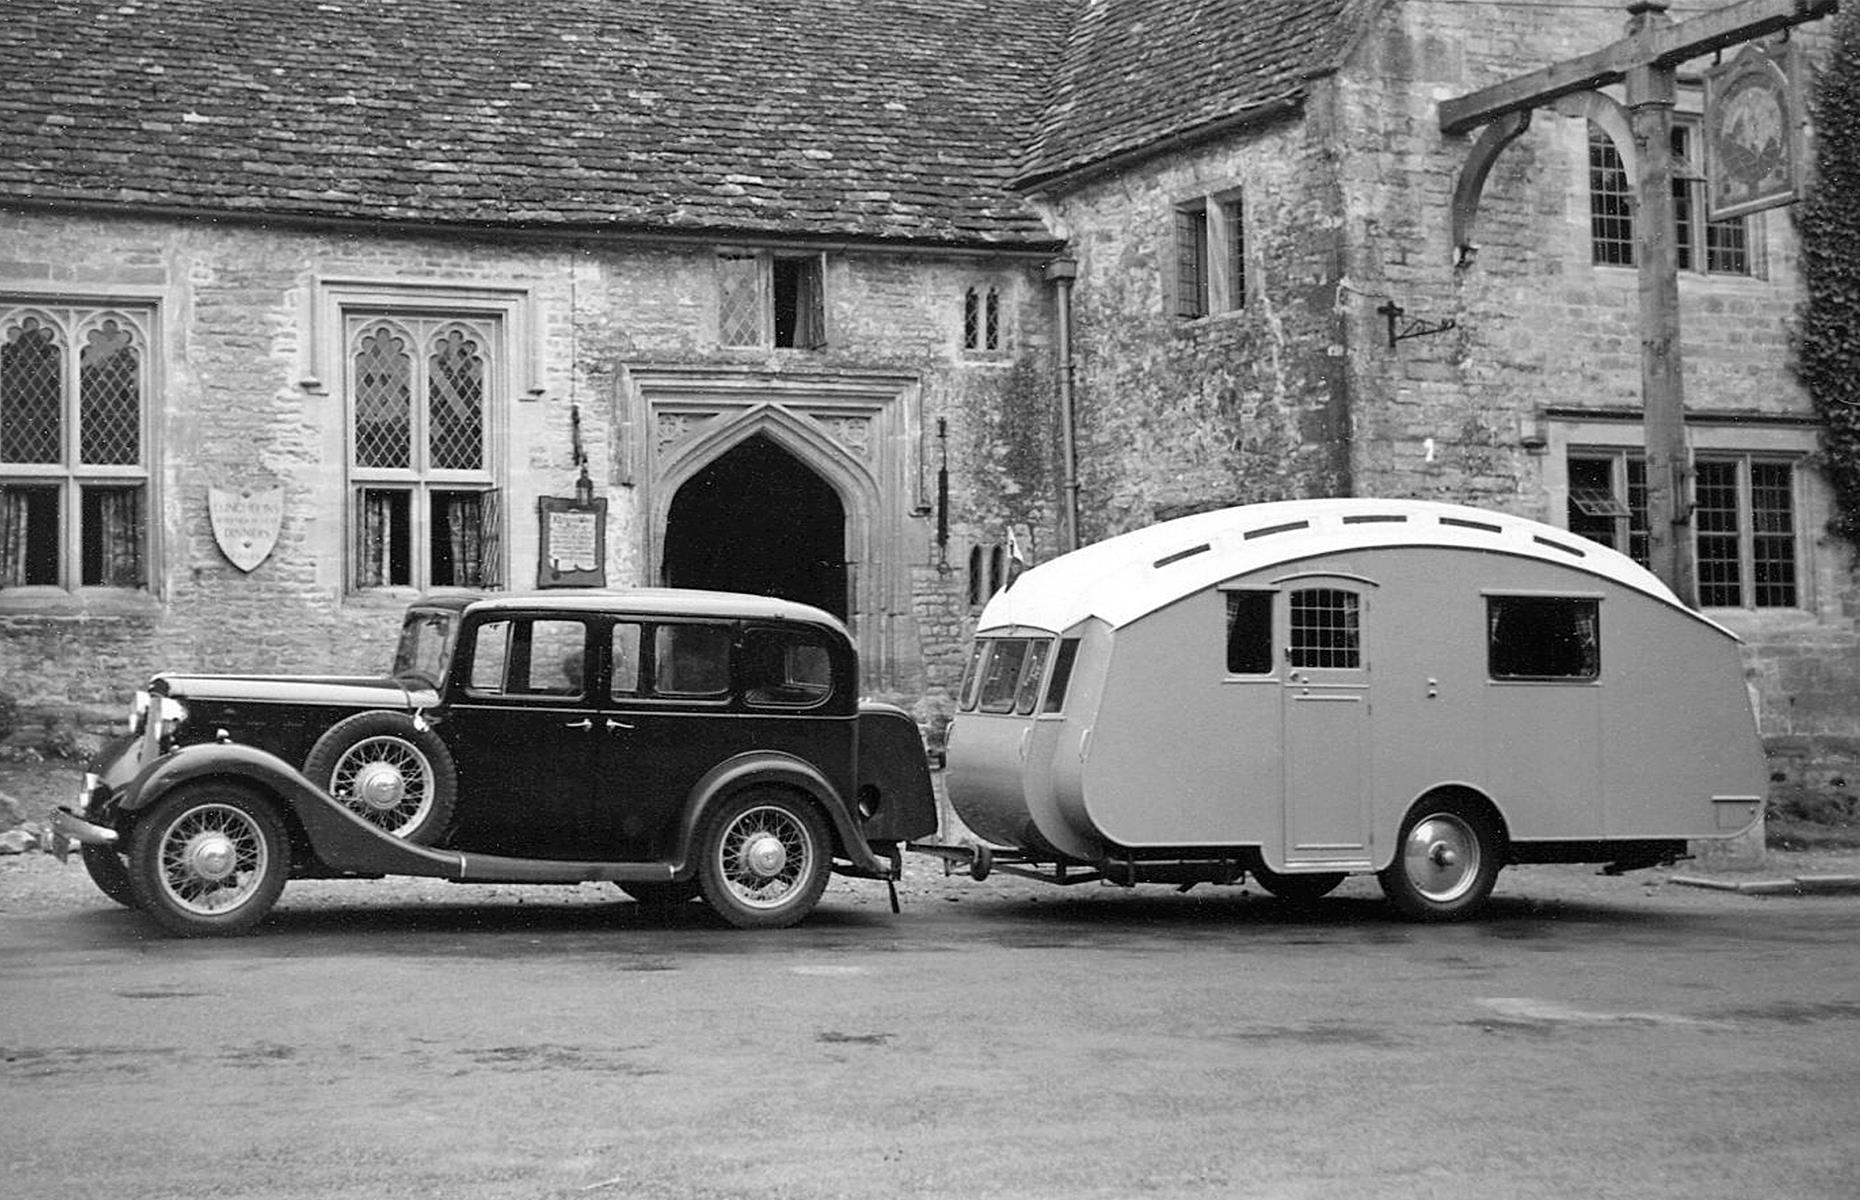 Slide 33 of 35: Motor-pulled caravans, which have pre-war roots, found their footing once the pandemic had ended too. In the 1930s, the gold standard of caravans was born with Bertram Hutchings' Winchester model (pictured), which was soon seen on roads and campsites across Britain. Unsurprisingly, caravan parks began to spring up along Britain's coastal areas too.